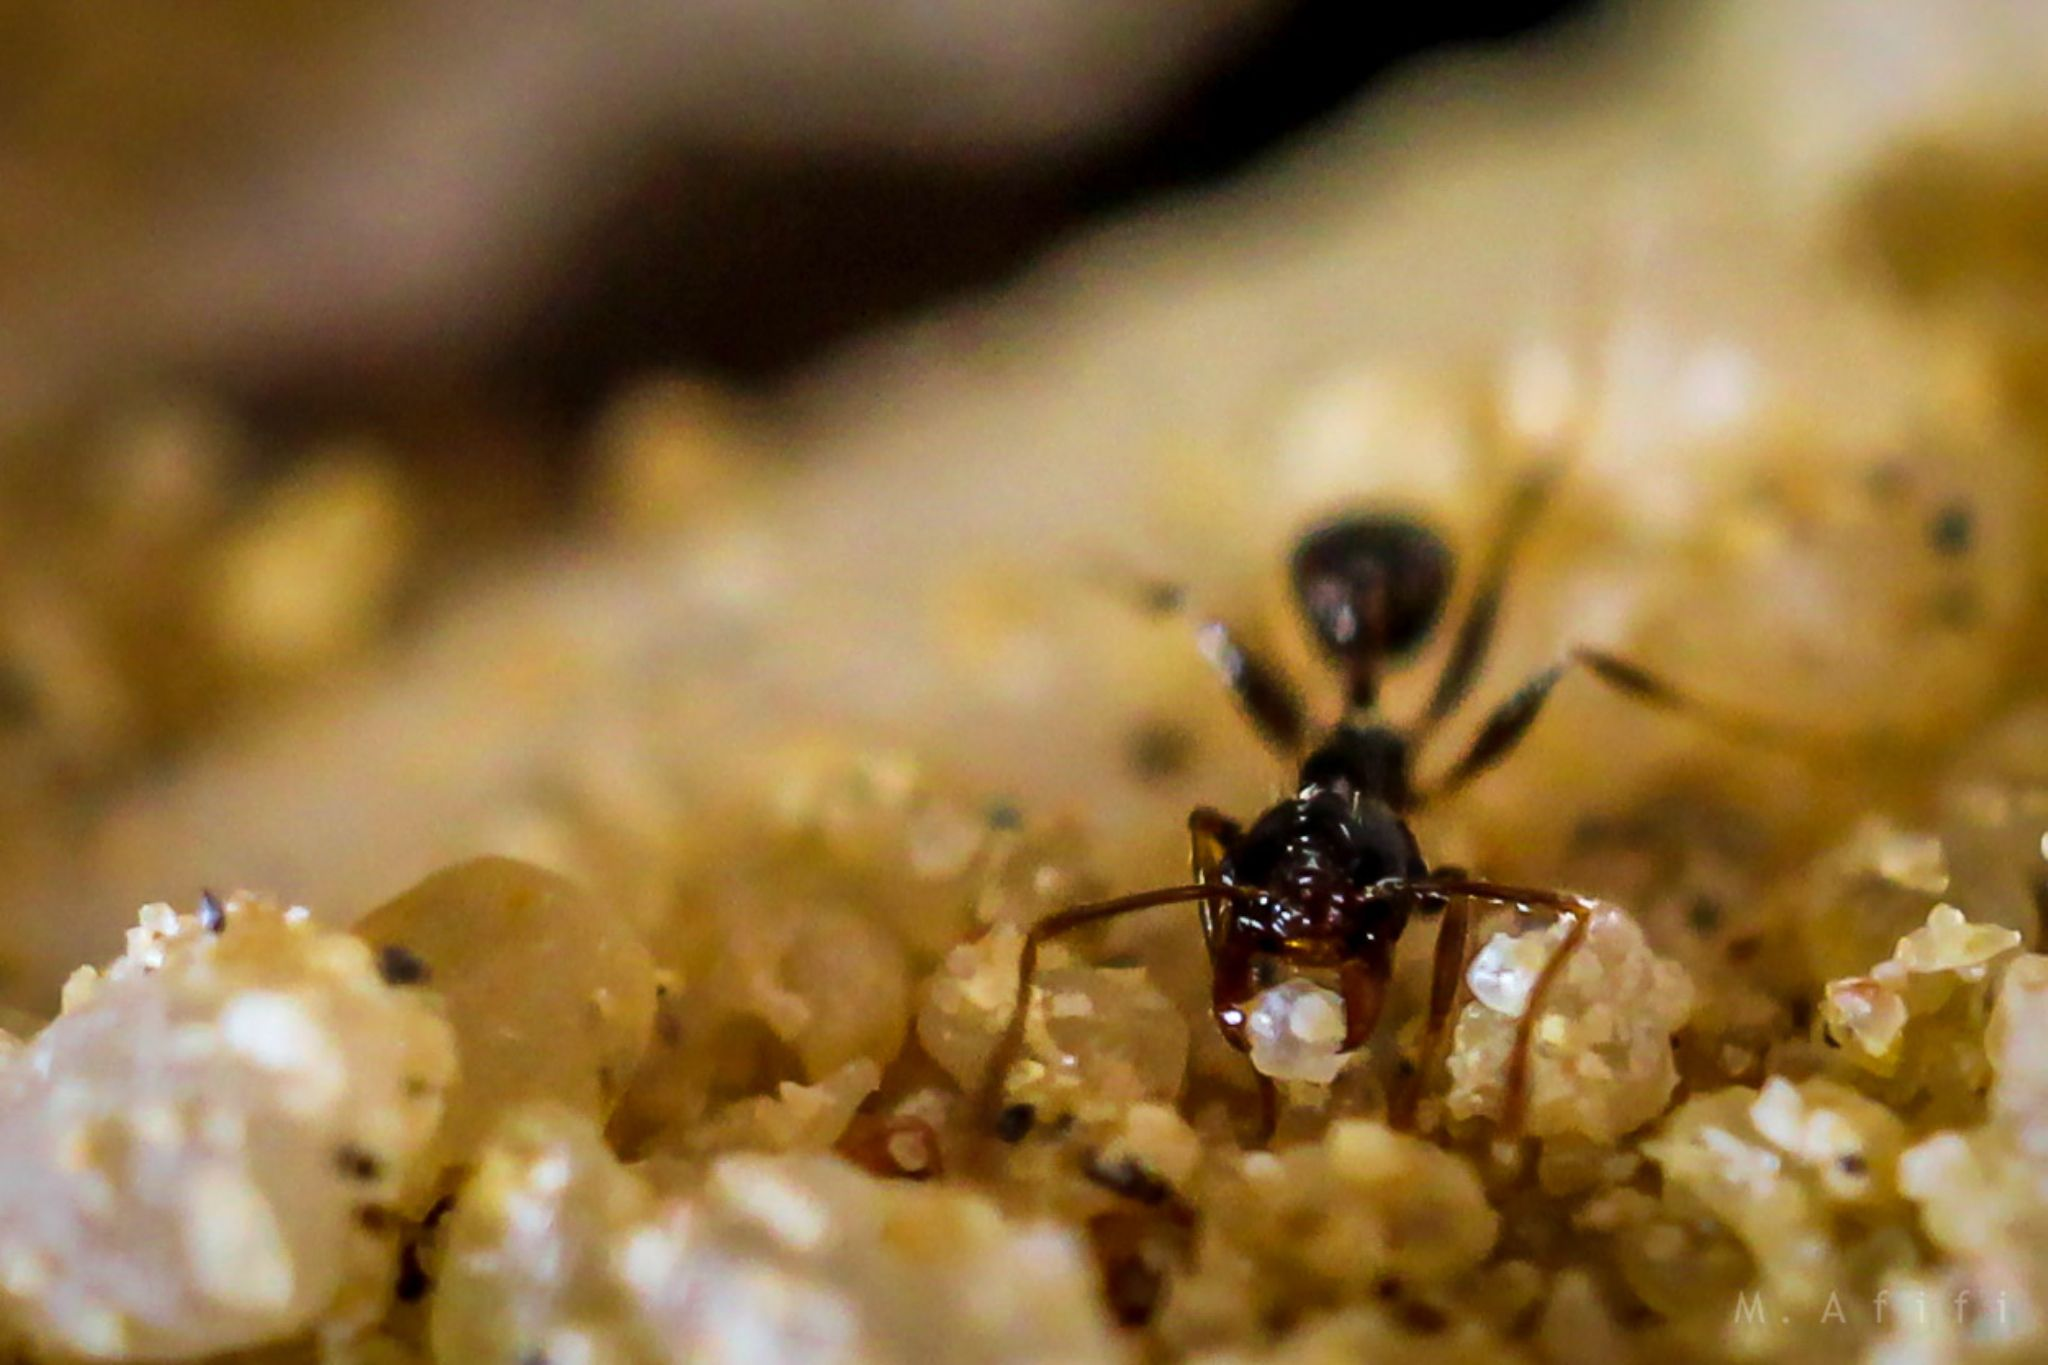 Ants by M. Afifi